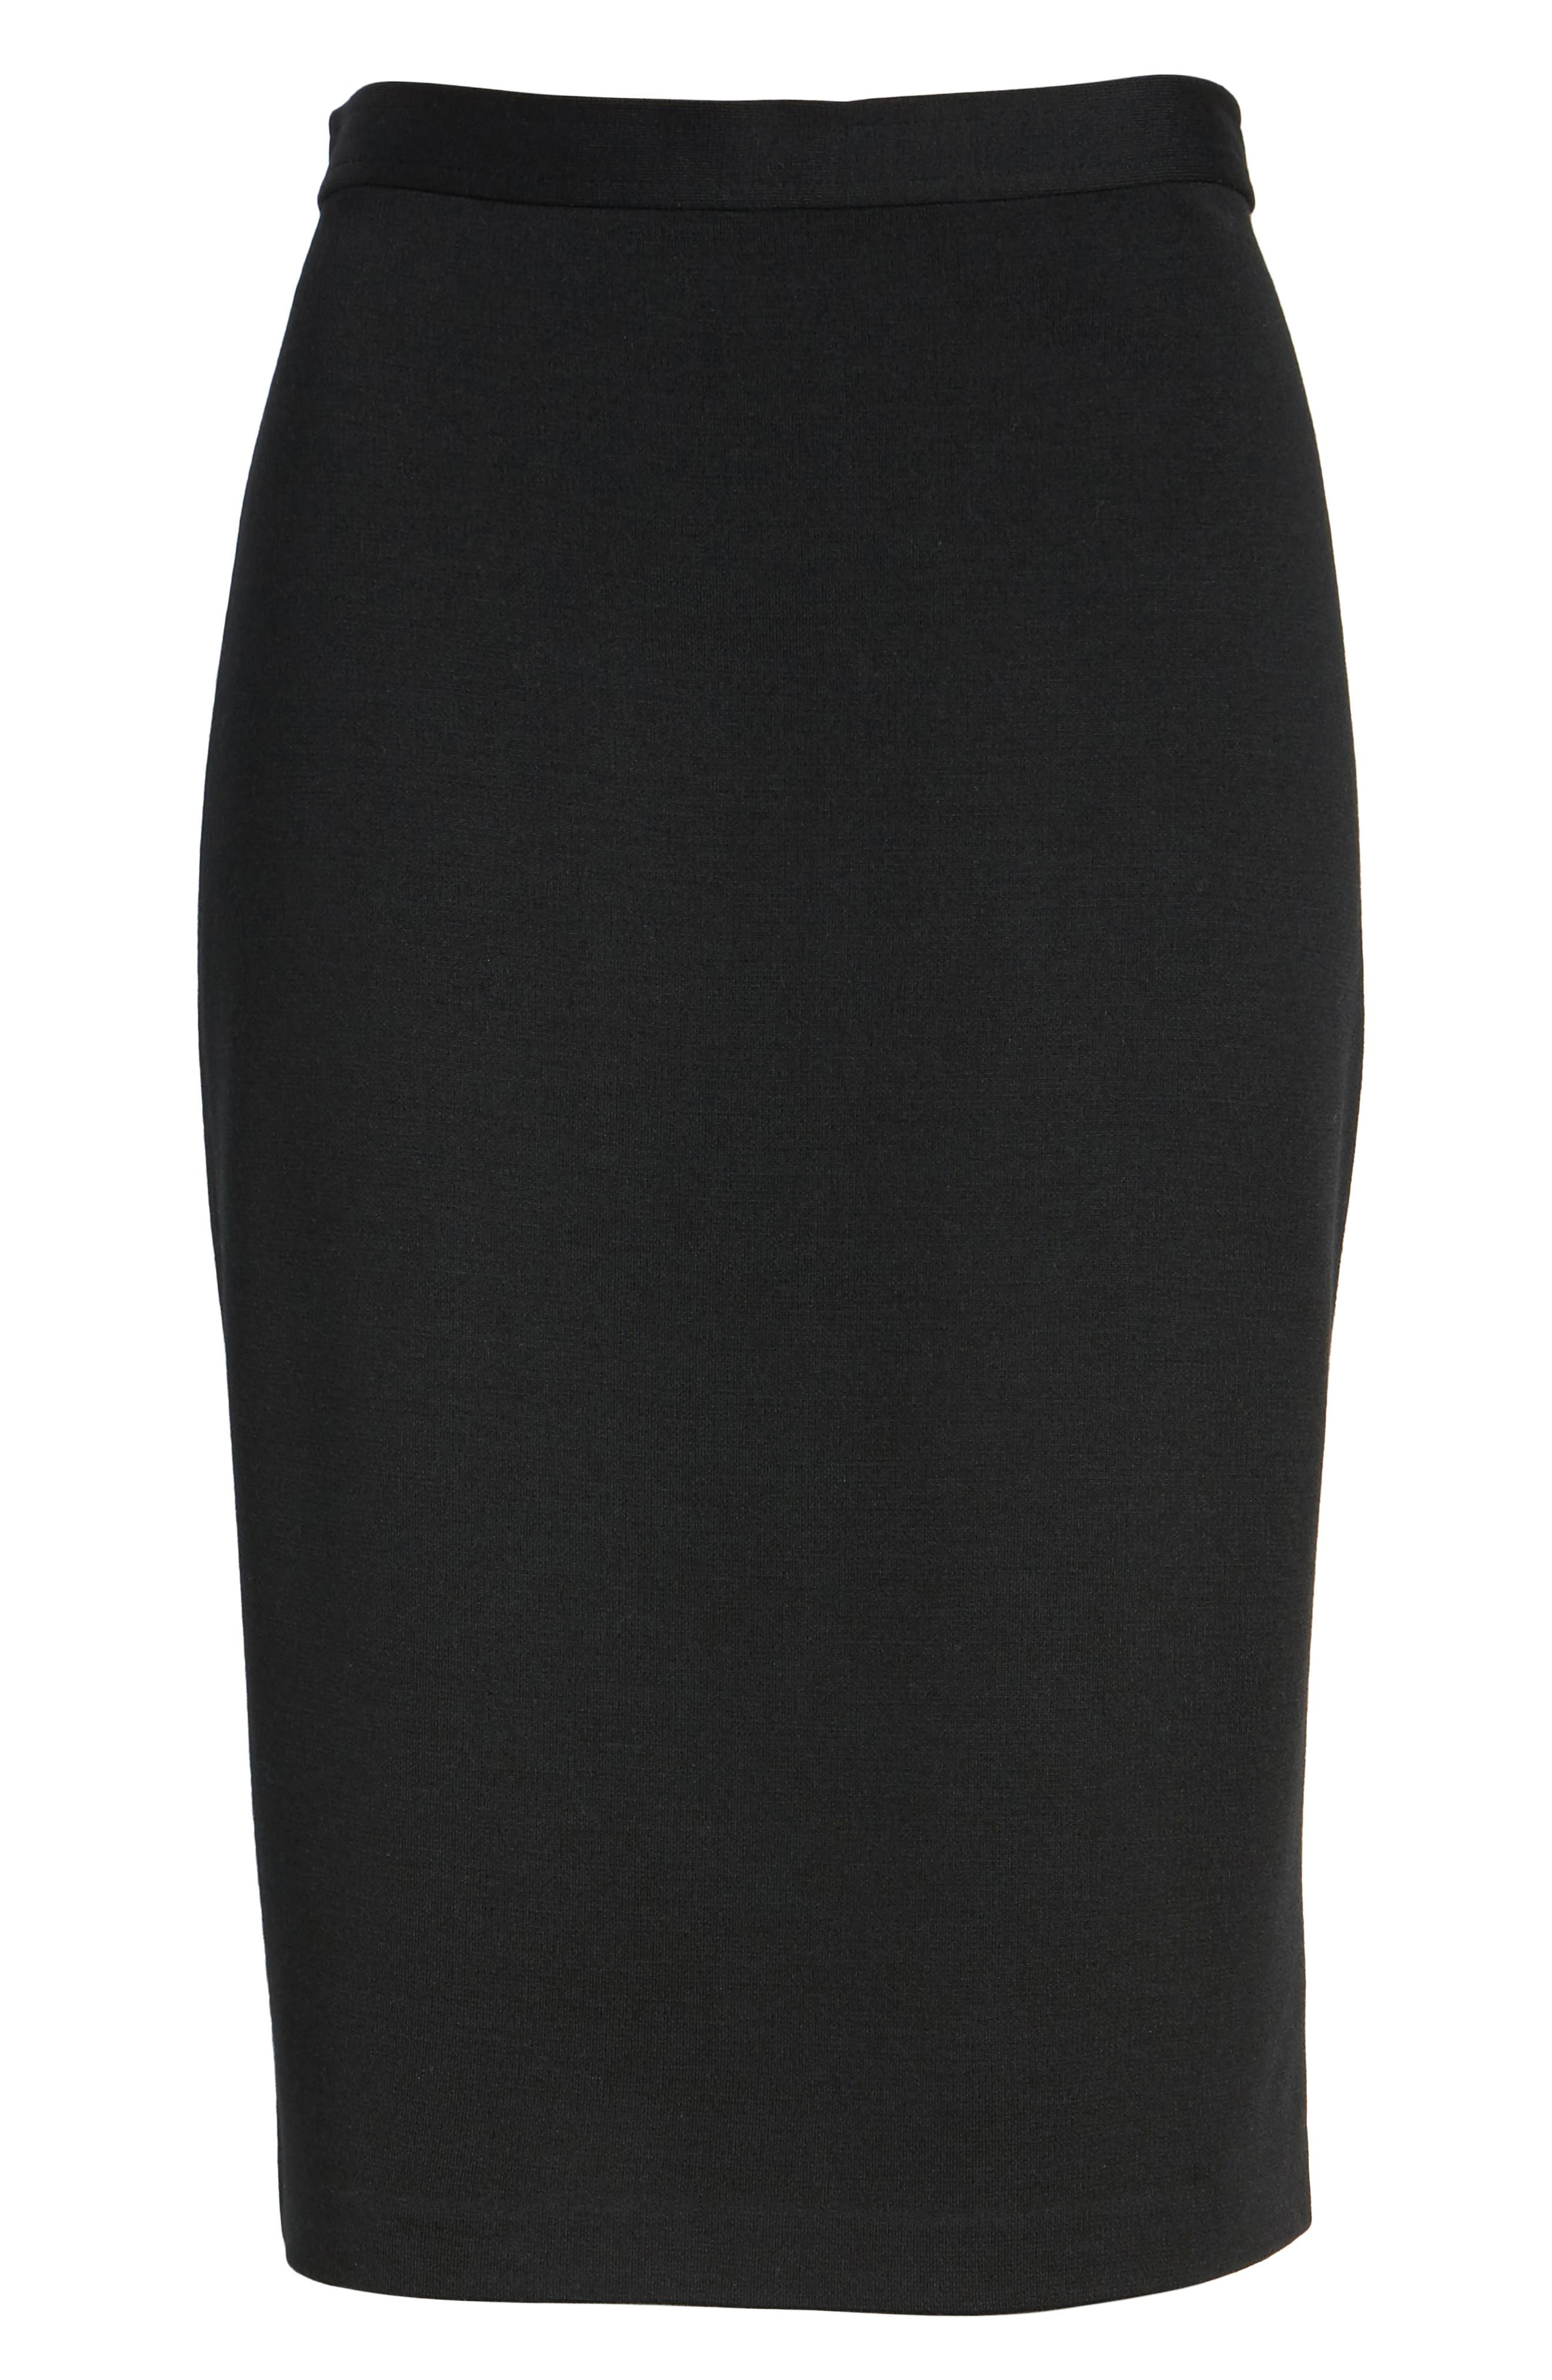 Milano Knit Pencil Skirt,                             Main thumbnail 1, color,                             CAVIAR